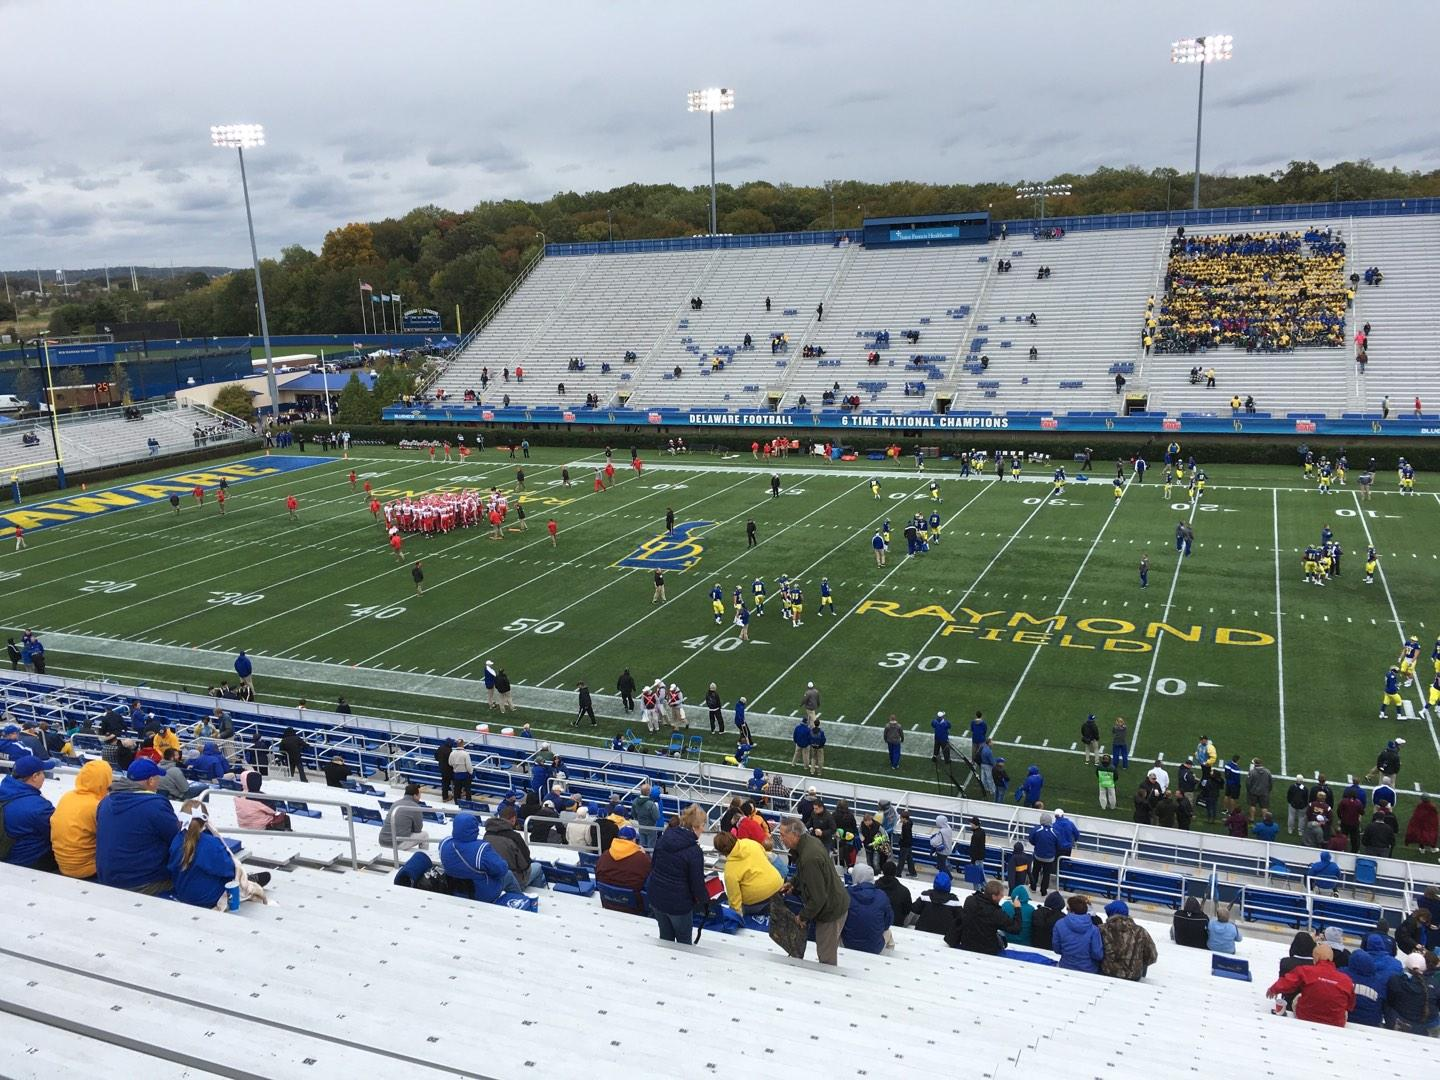 Delaware Stadium Section B Row Jj Seat 12